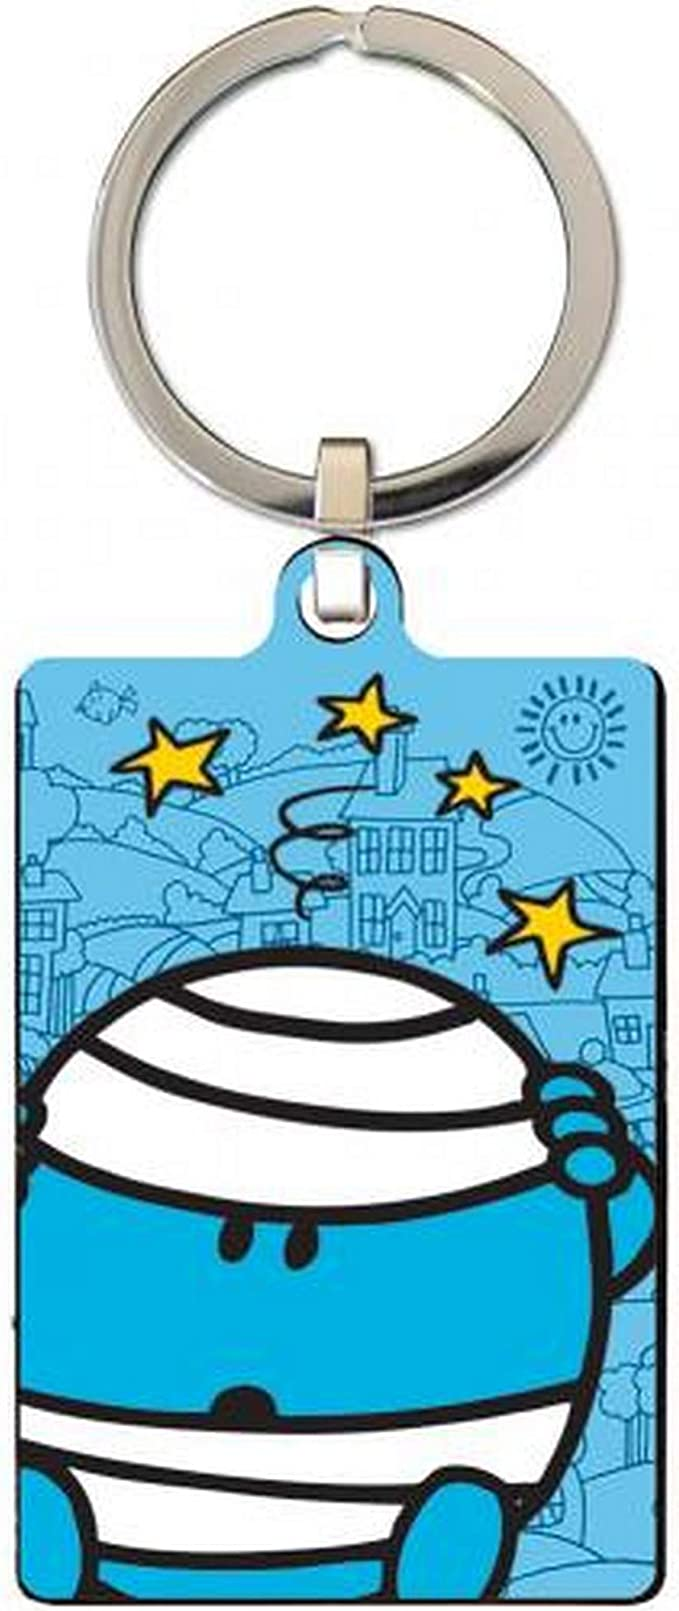 Mr Bump Metal Keyring   OFFICIAL PRODUCT